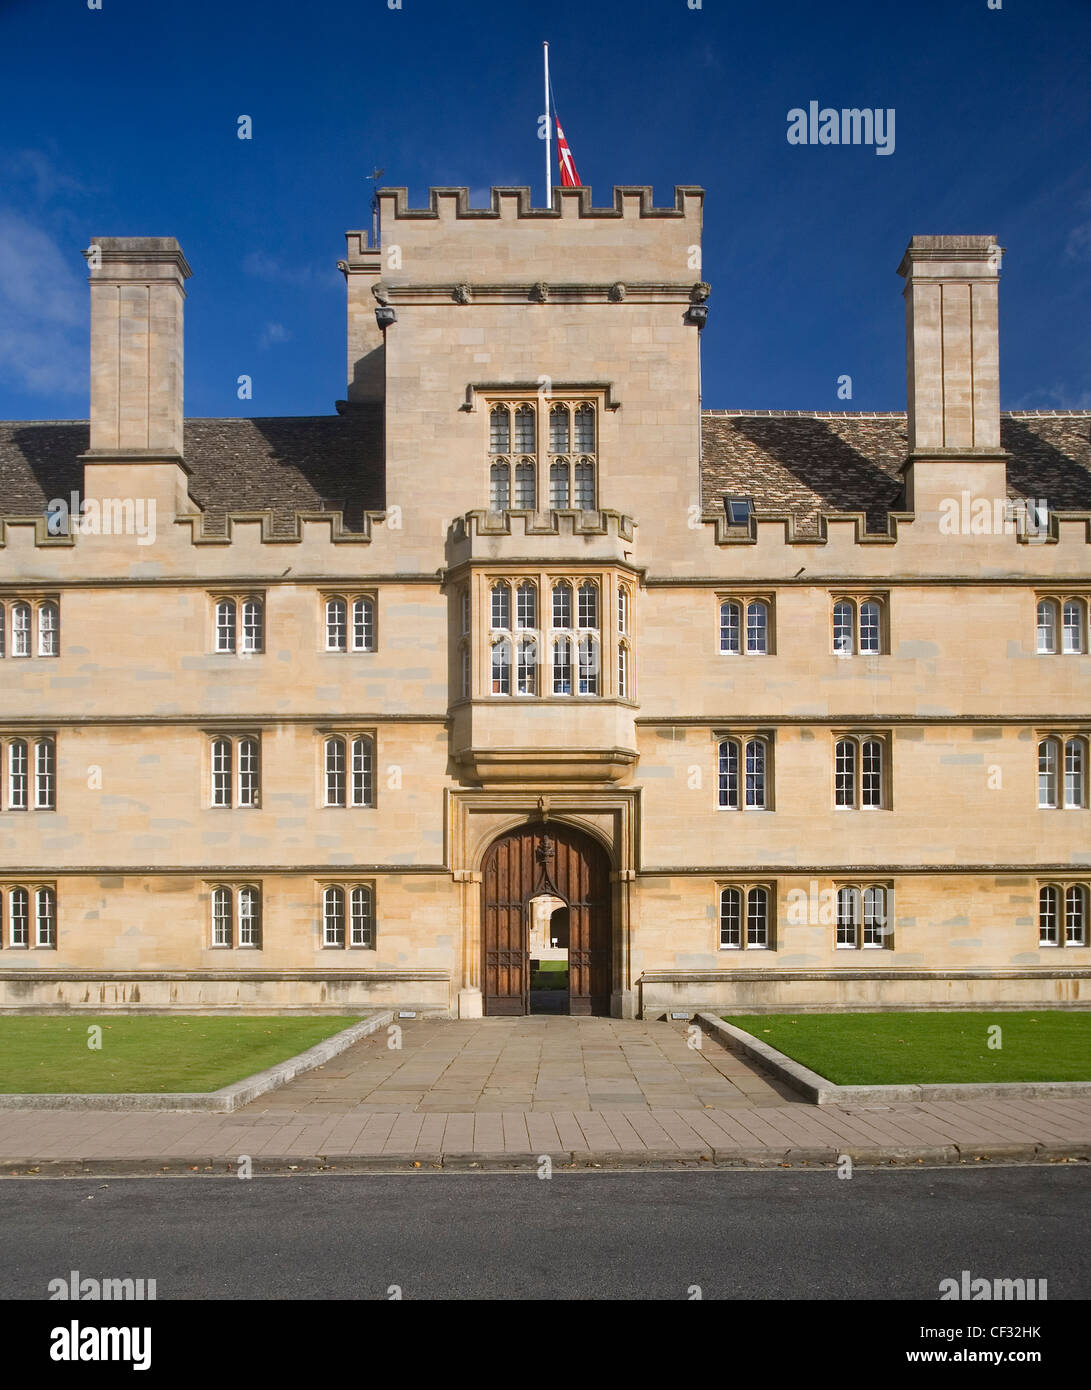 Wadham College, one of the largest colleges of Oxford University, founded in 1610 by Dorothy Wadham. - Stock Image